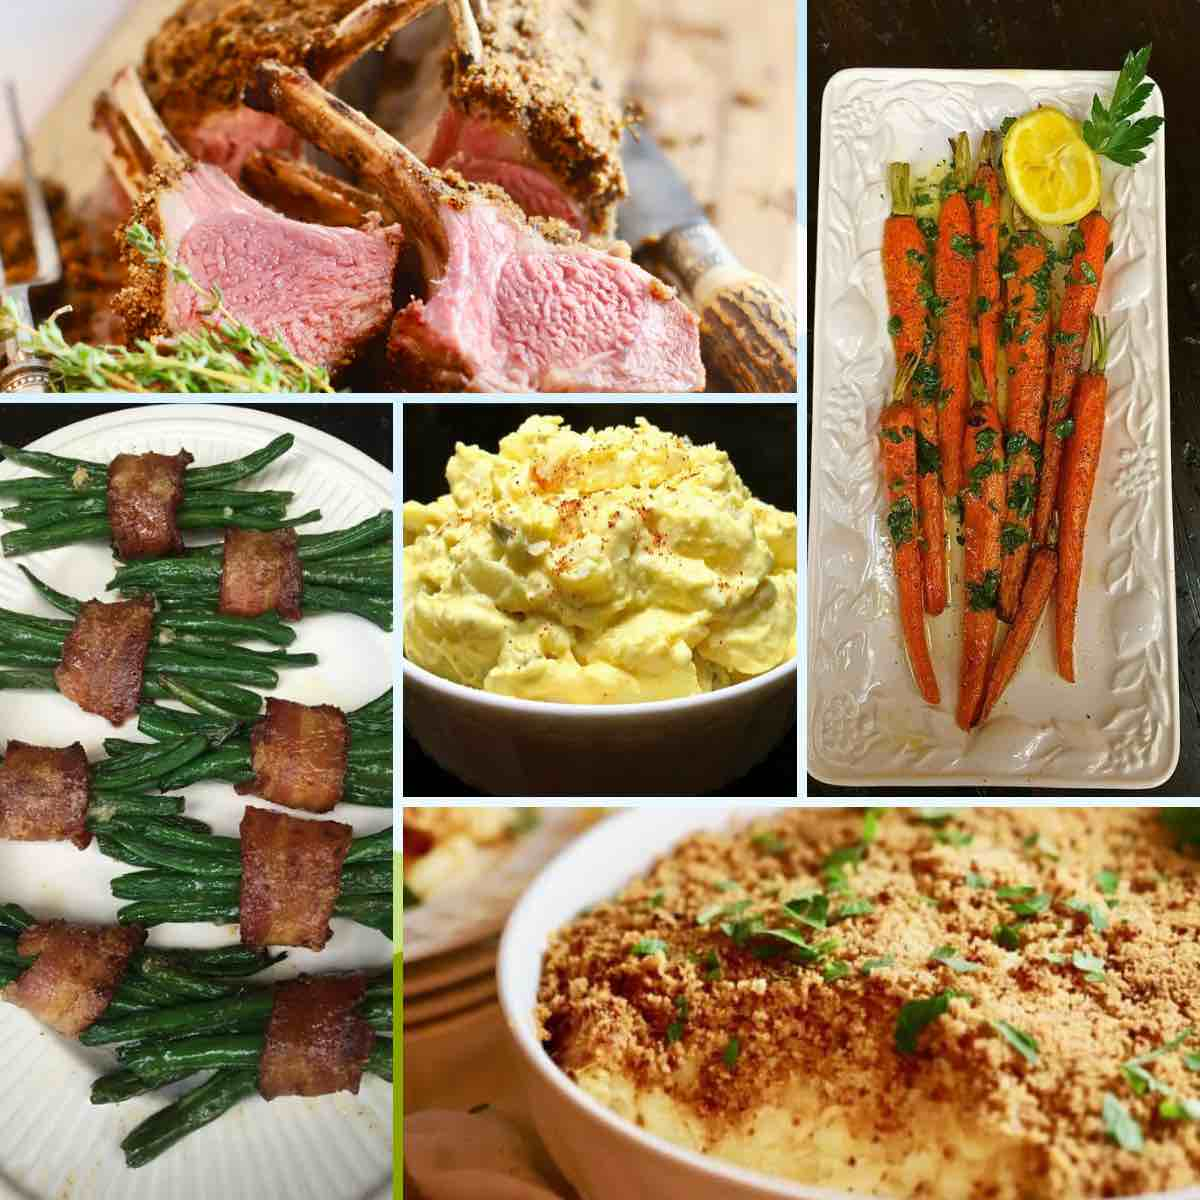 A collage of traditional Easter dishes including rack of lamb and potato salad.